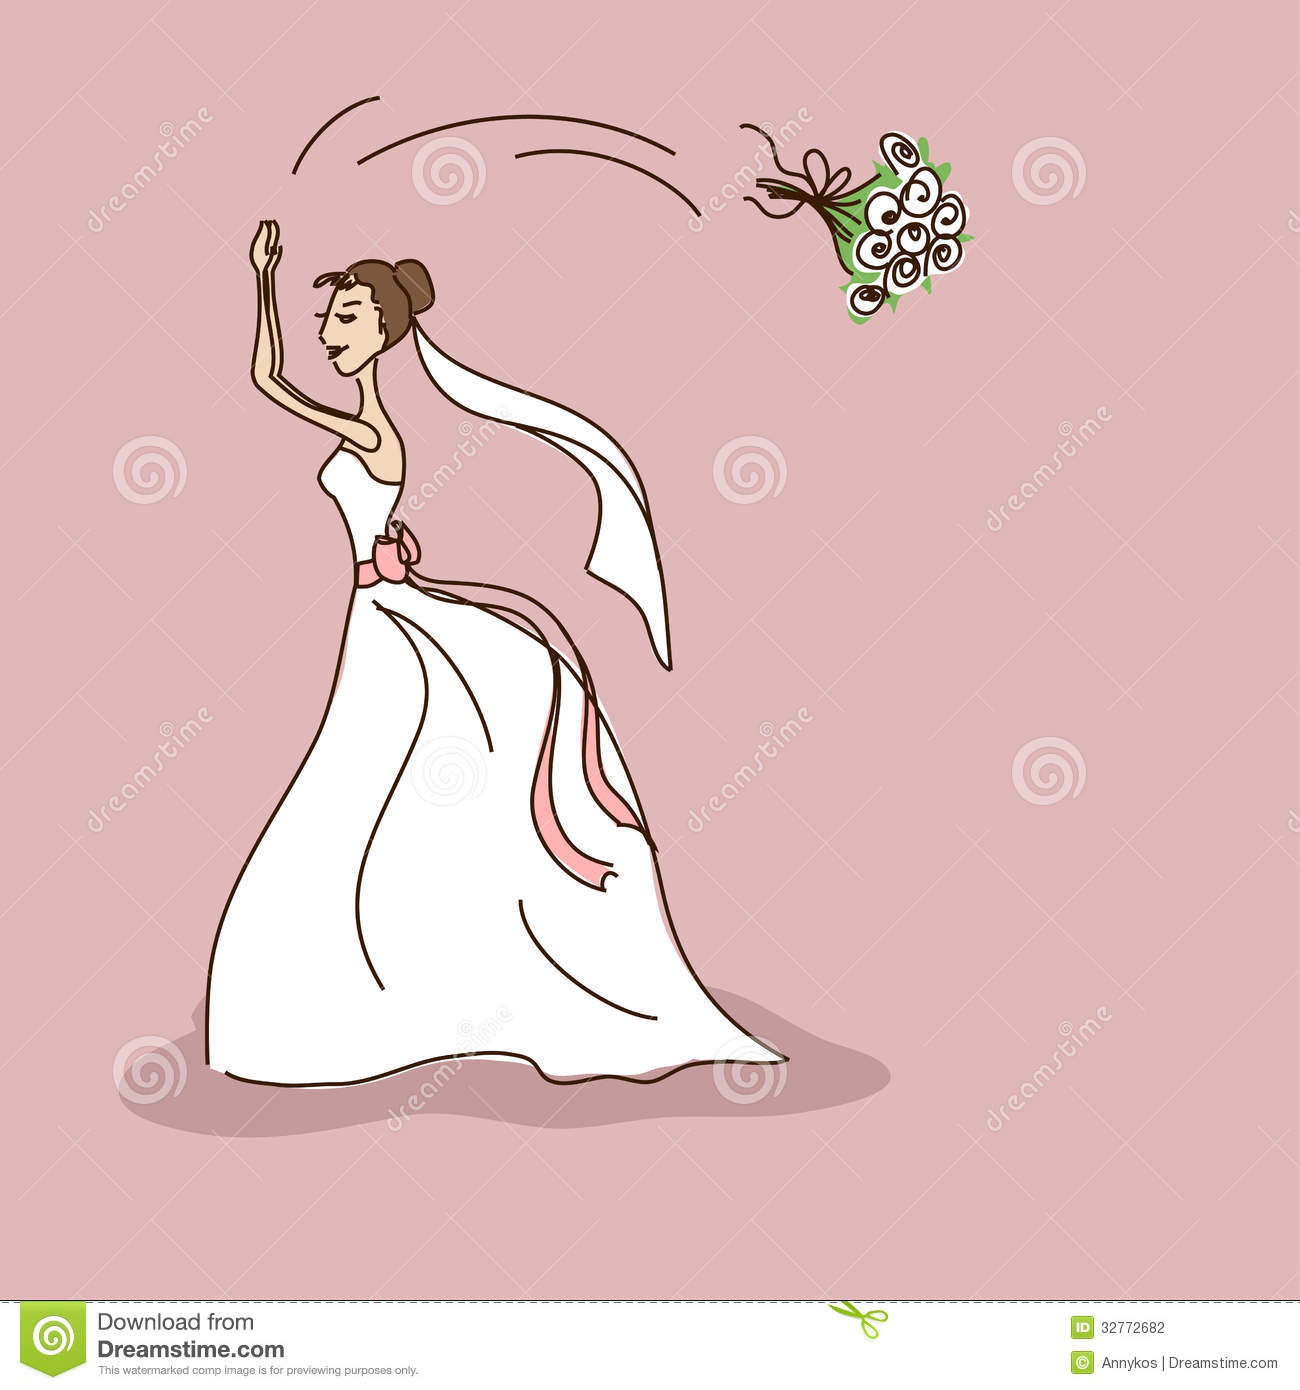 Bridal Shower Or Wedding Invitation With Bride Throwing A Brides.